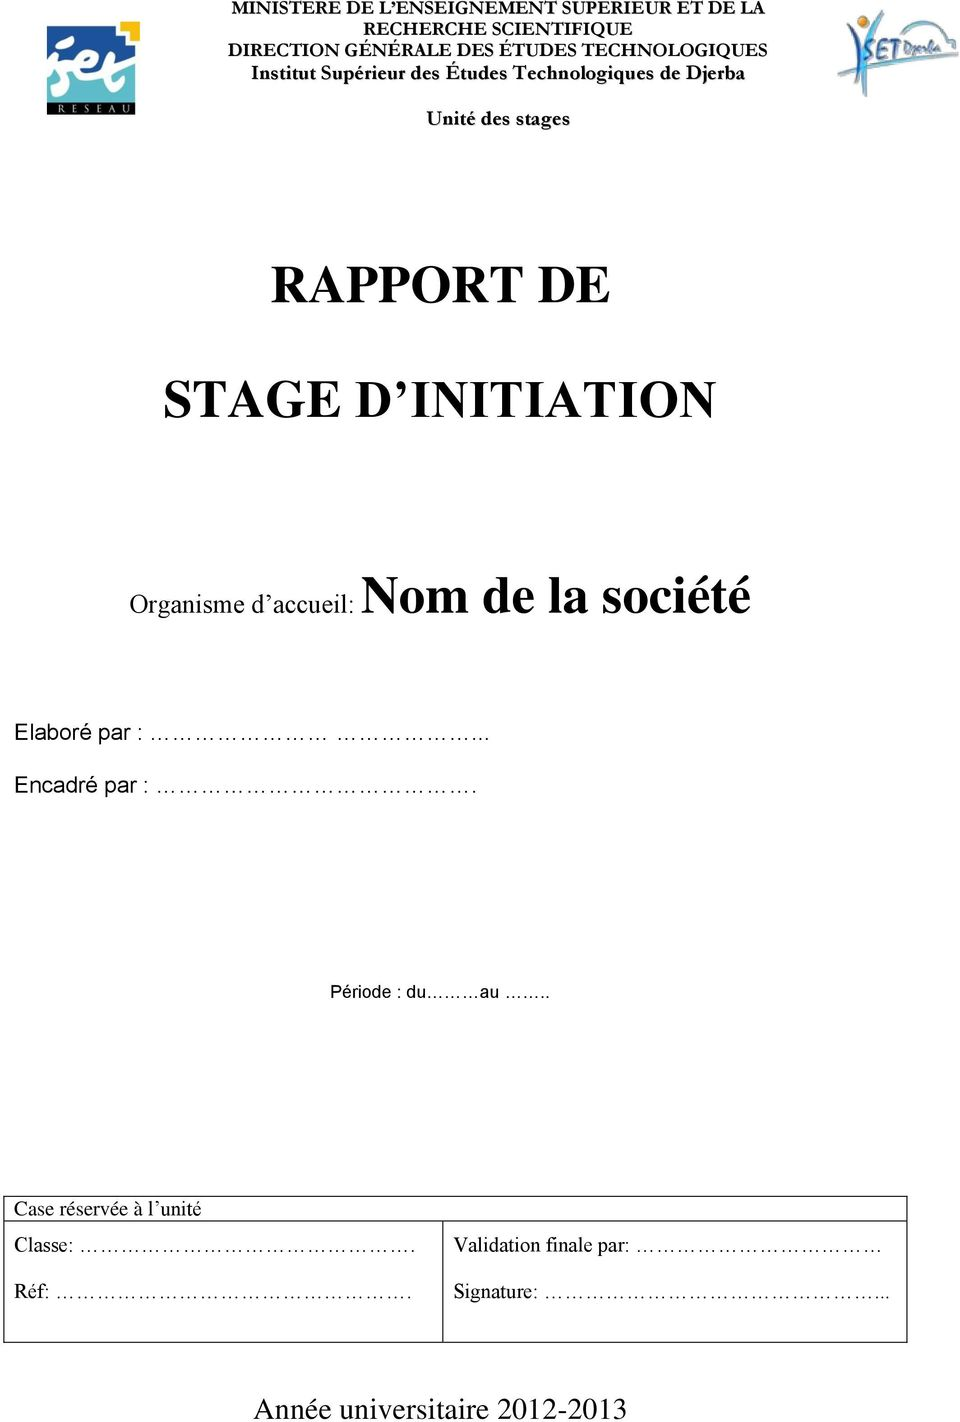 Modèle Du Rapport Stage Initiation Pdf Free Download